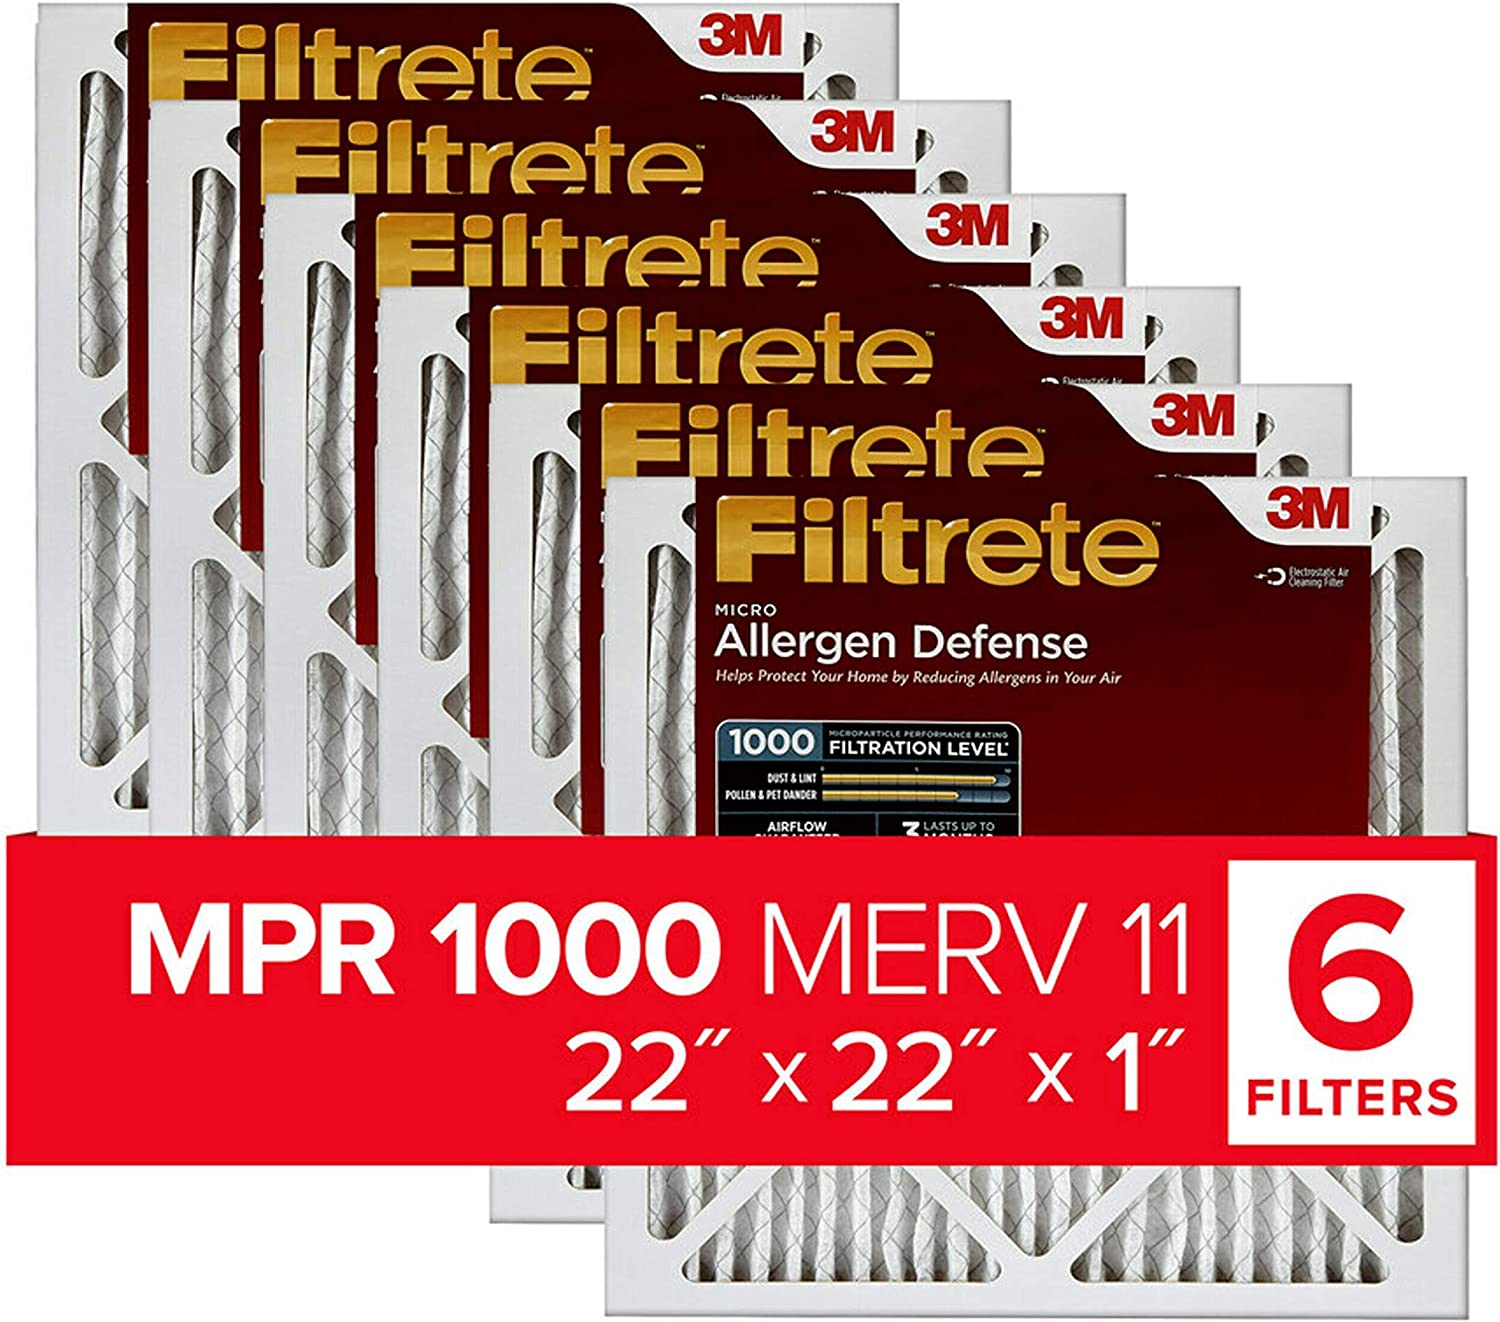 Nordic Pure 20x20x1 MPR 1000 Pleated Micro Allergen Replacement AC Furnace Air Filters 6 Pack